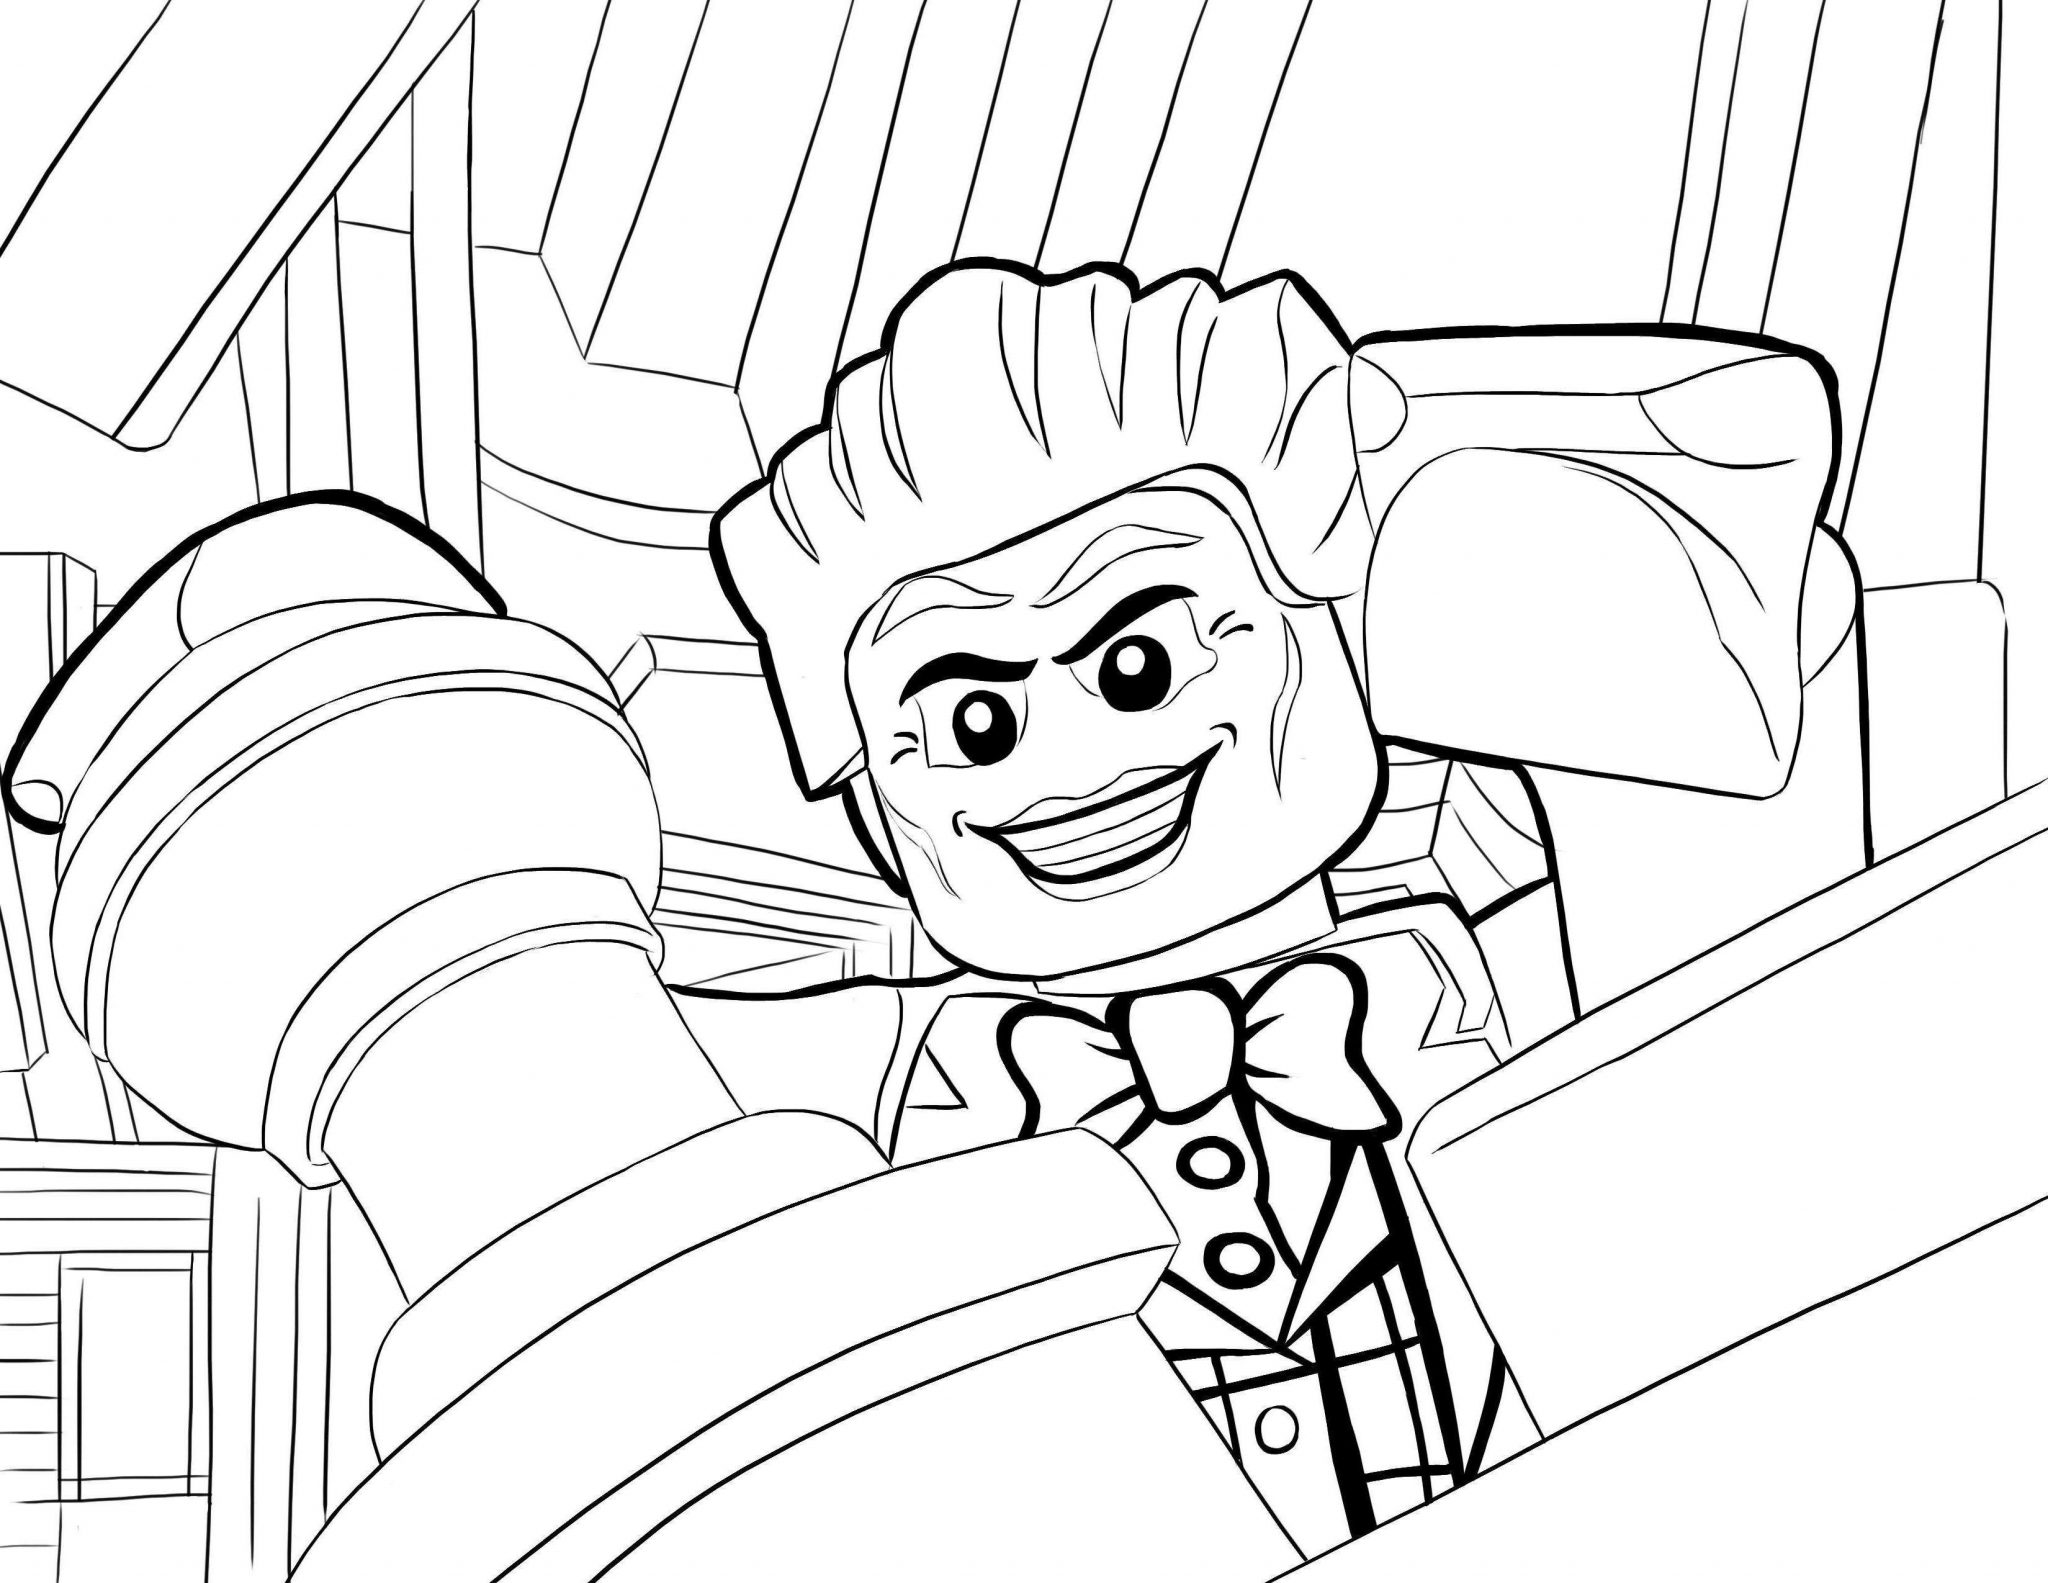 810 Top Coloring Pages For Harley Quinn Download Free Images